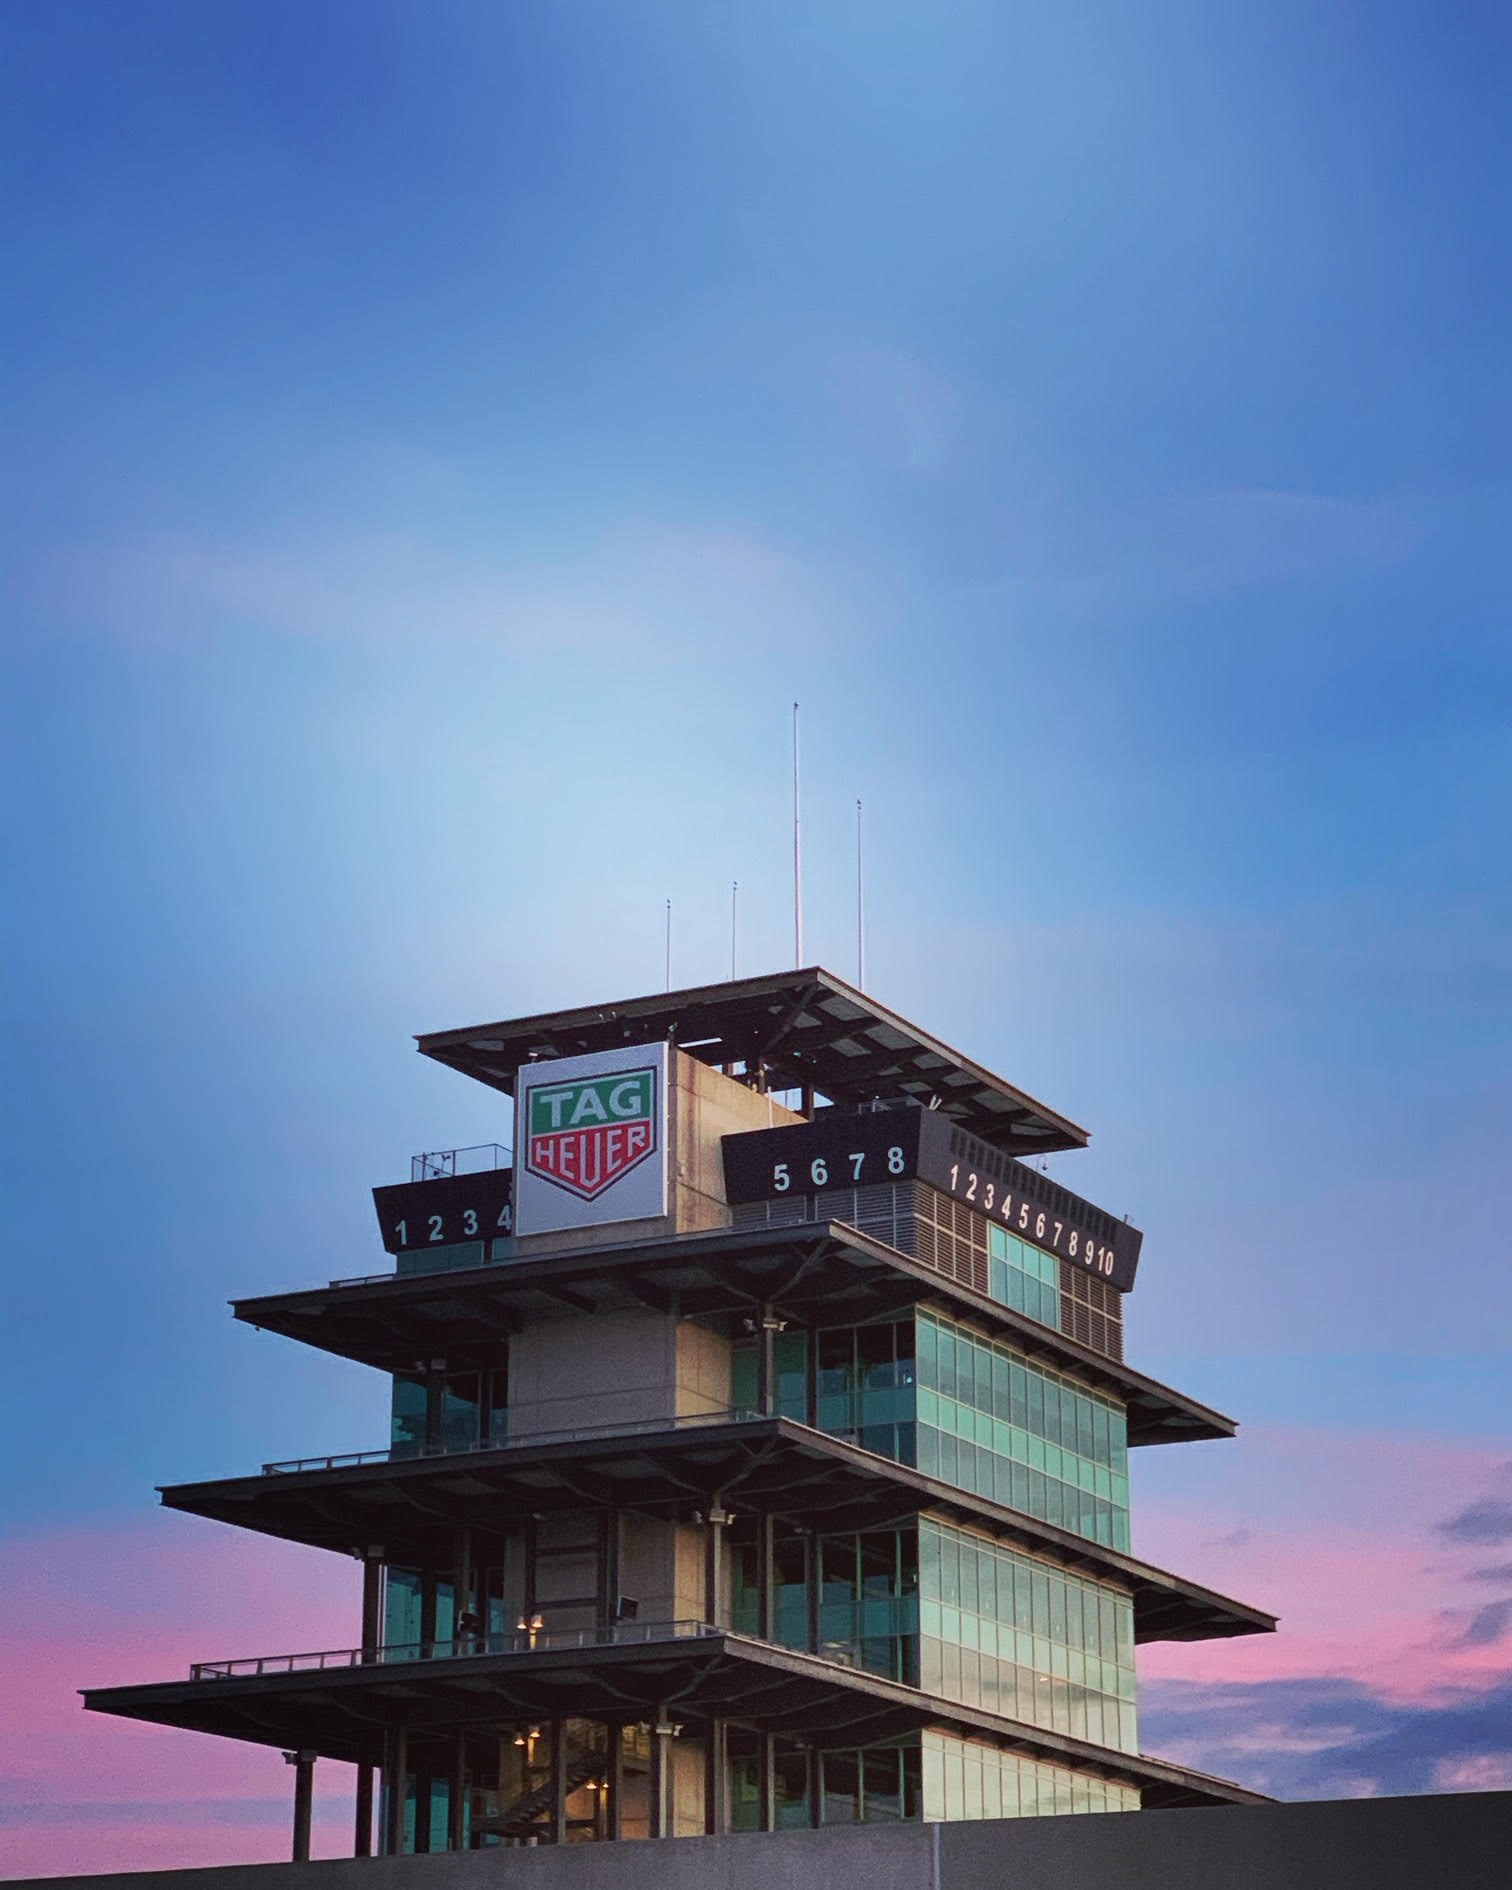 Sunrise over the famed Pagoda tower at Indianapolis Motor Speedway.